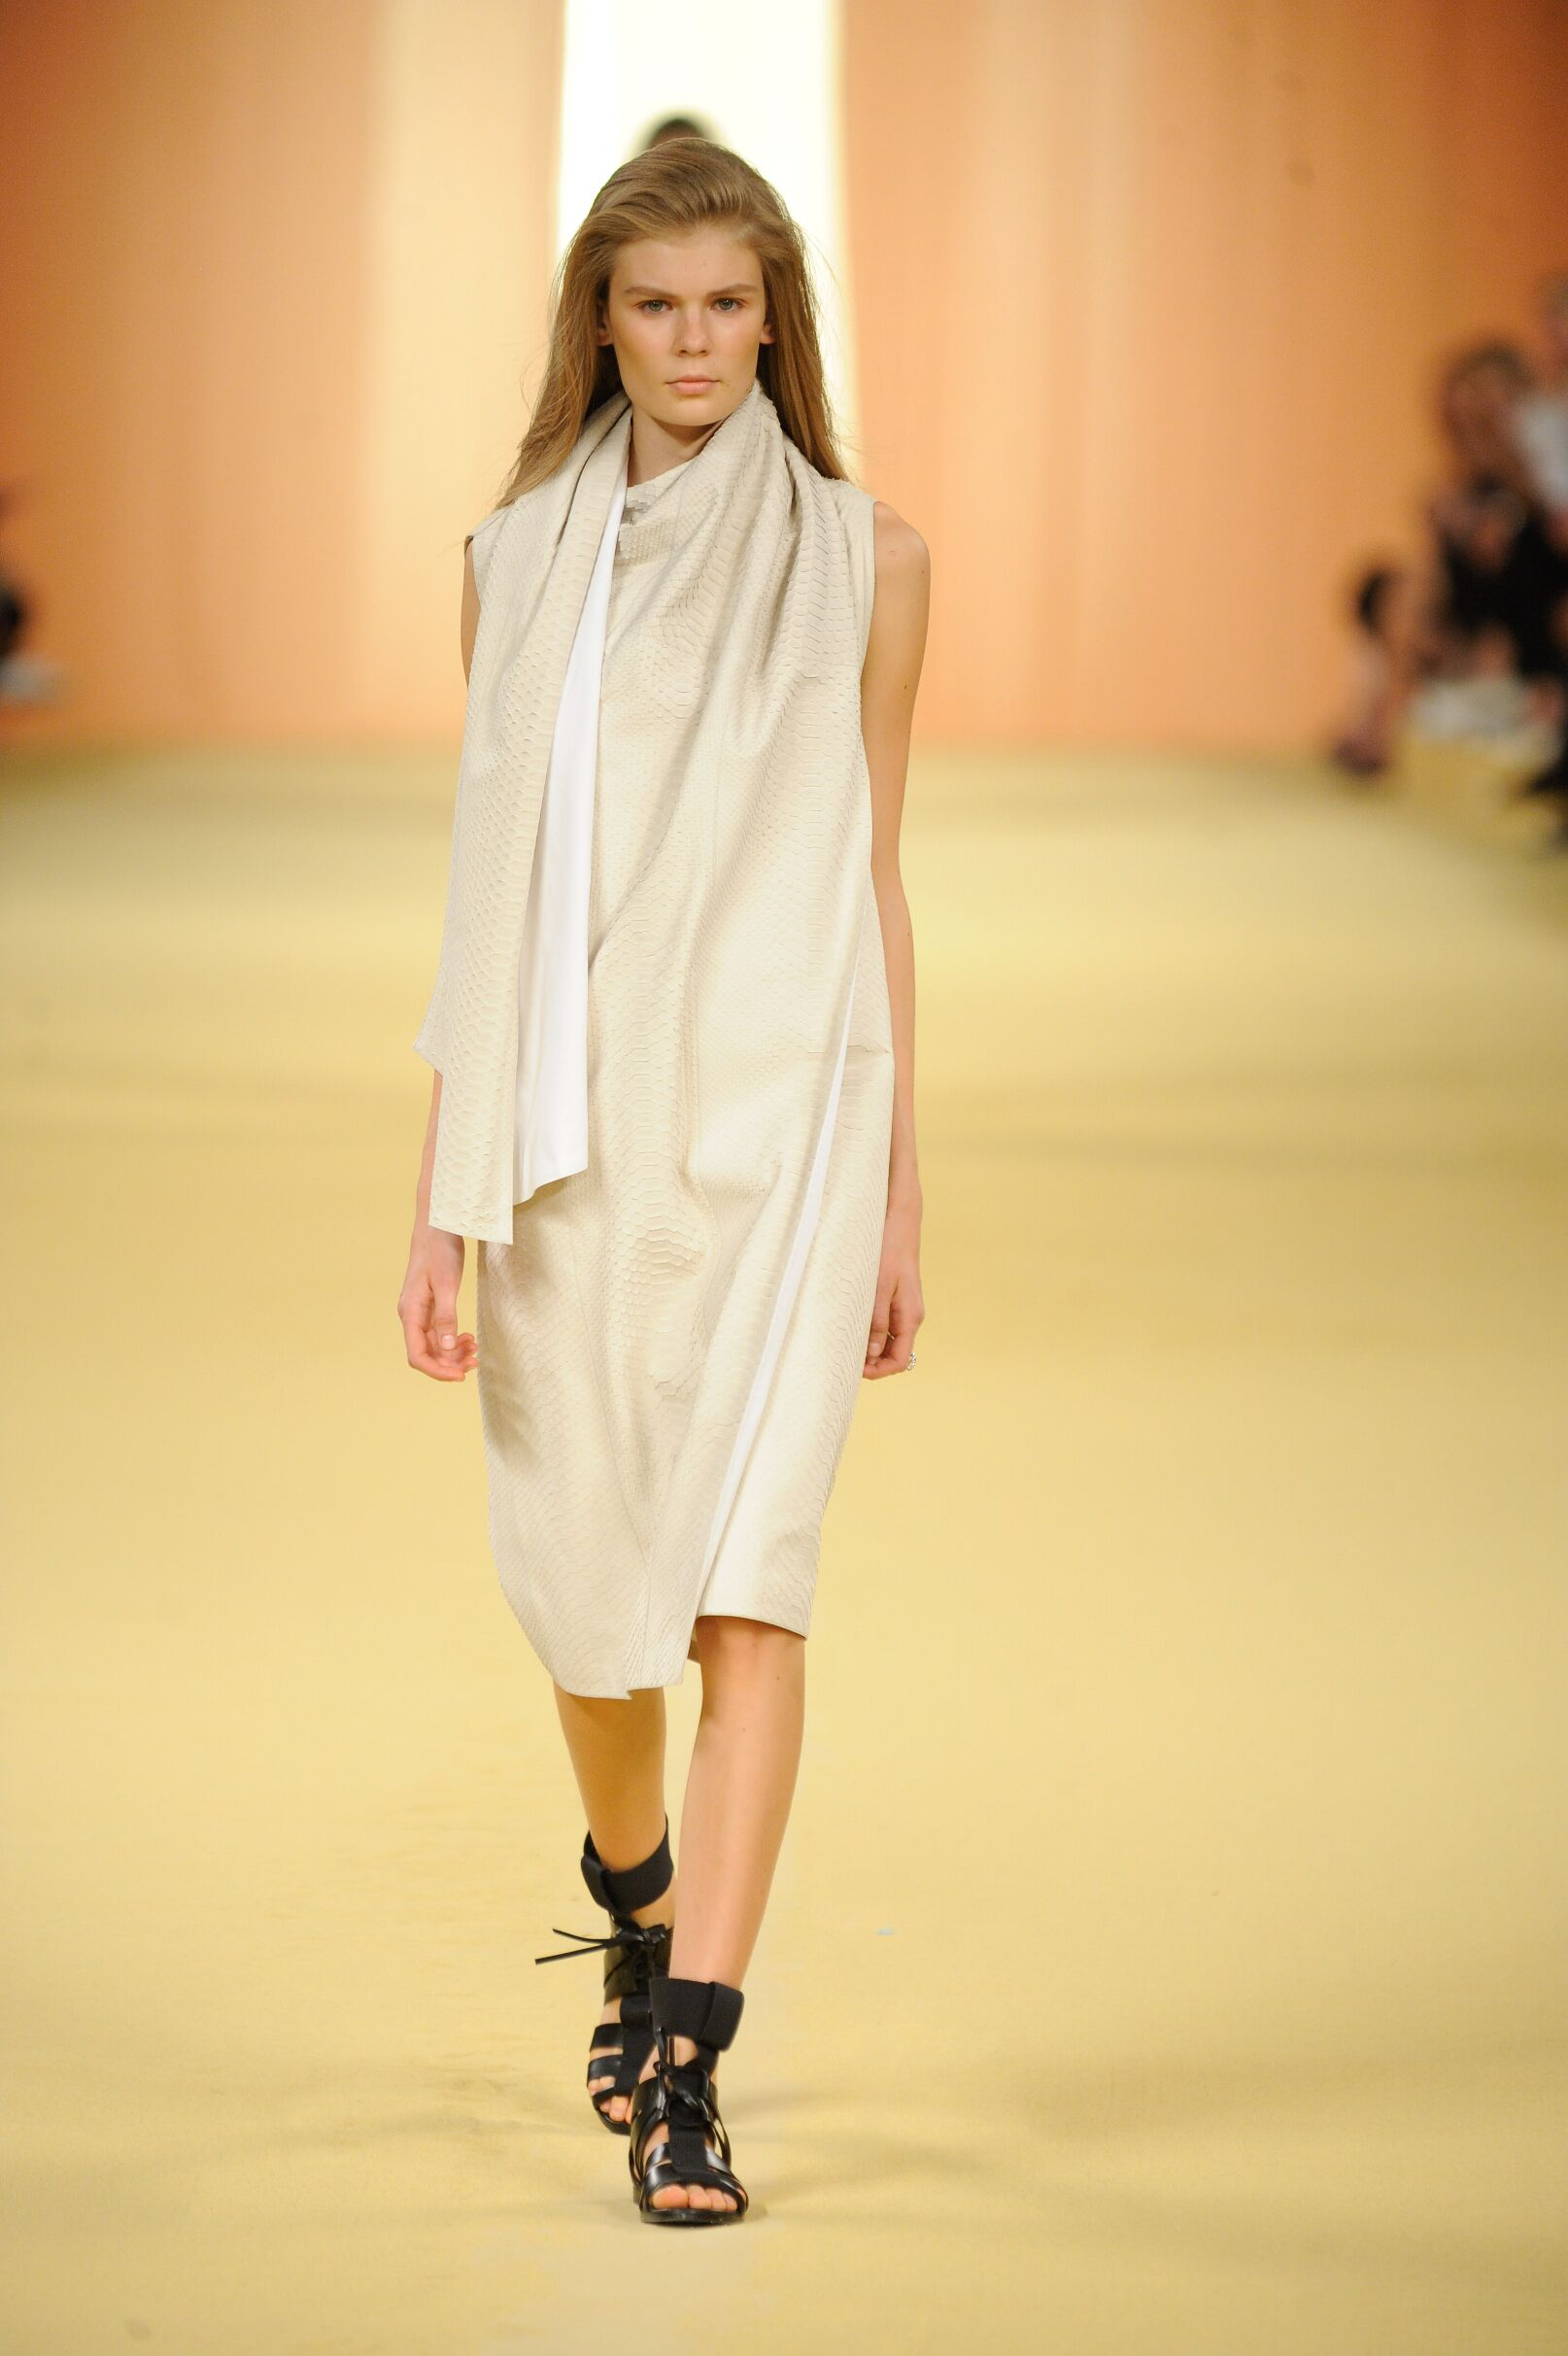 Summer 2015 Fashion Show Hermès